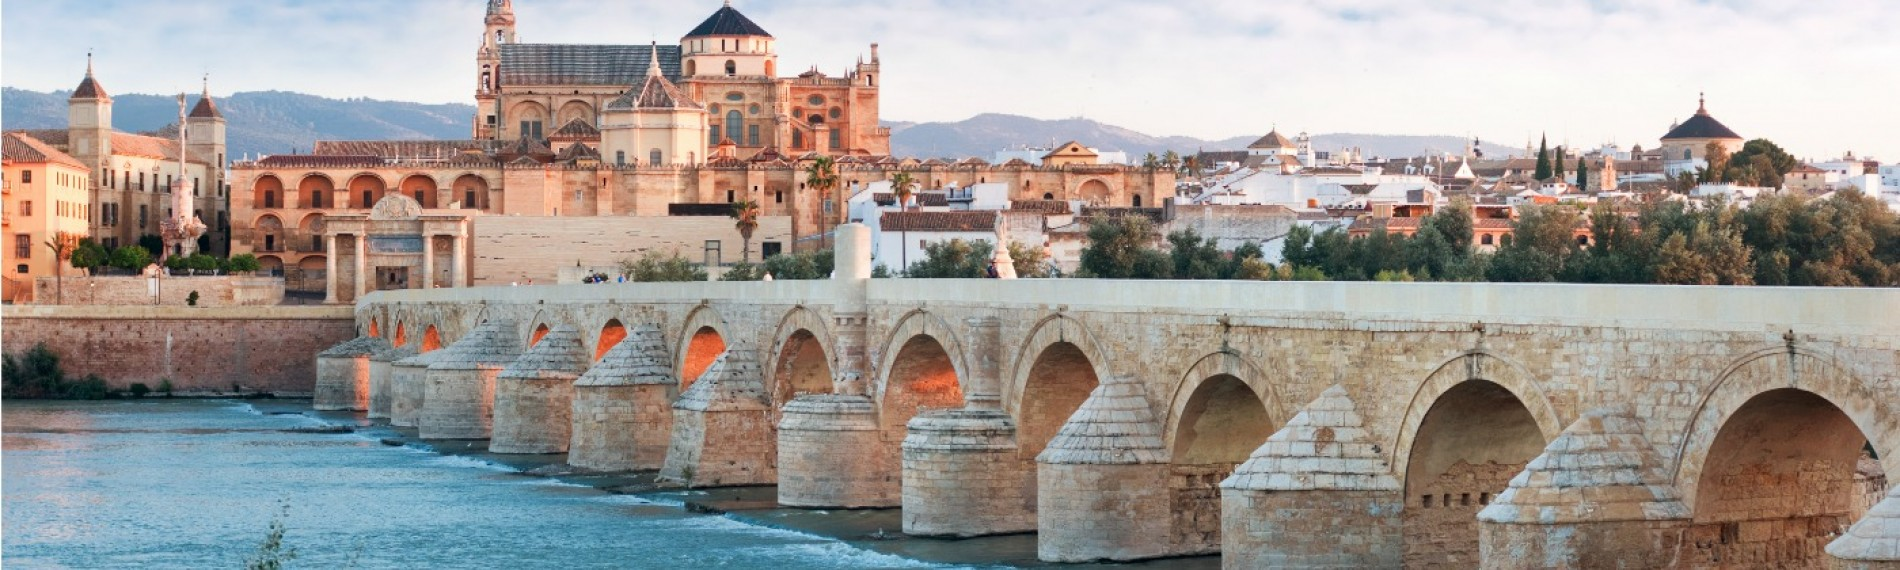 Cordoba Spain Islamic Tour